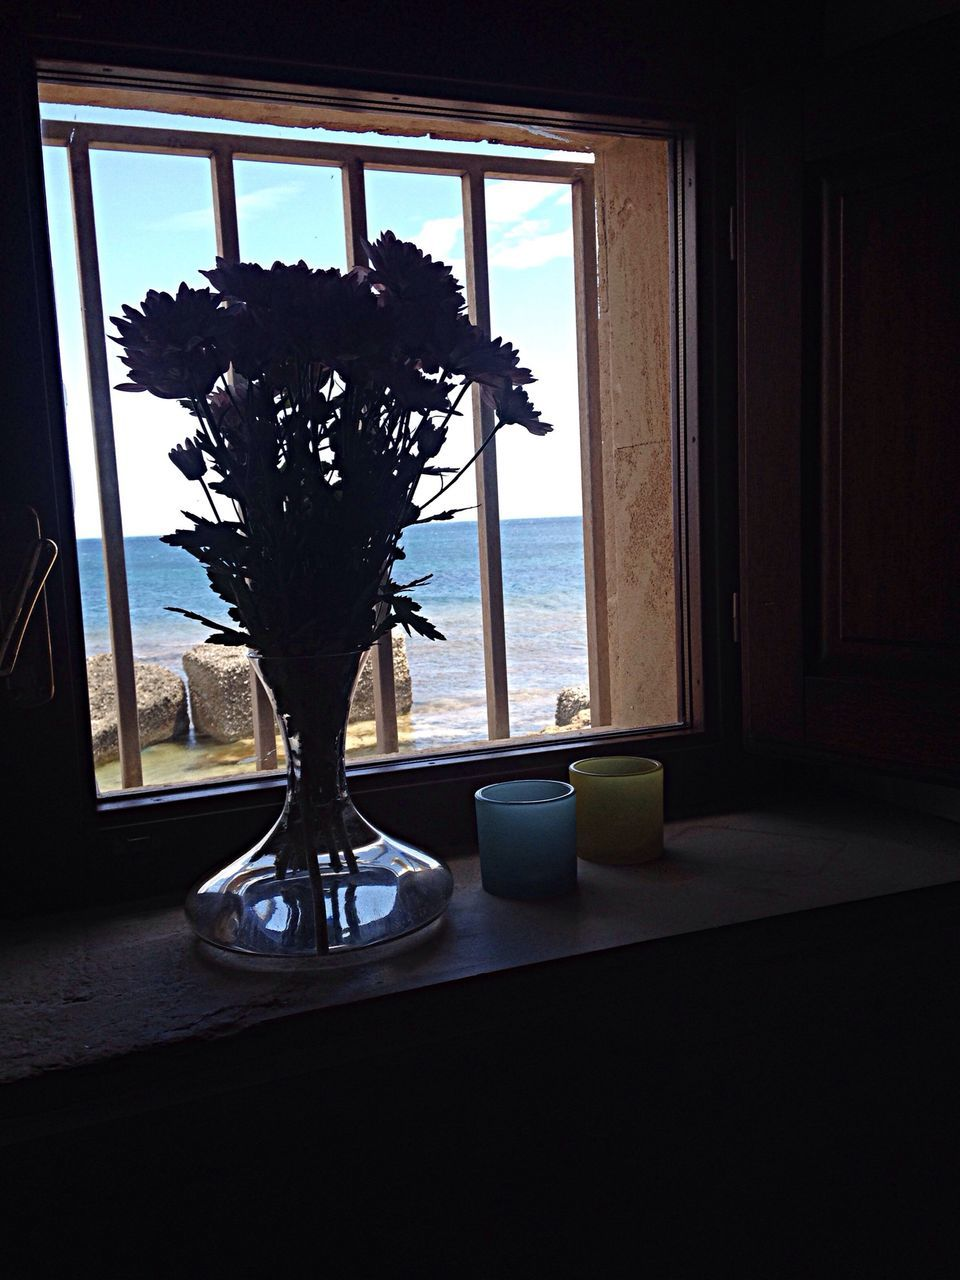 indoors, window, table, vase, home interior, no people, day, growth, flower, nature, tree, water